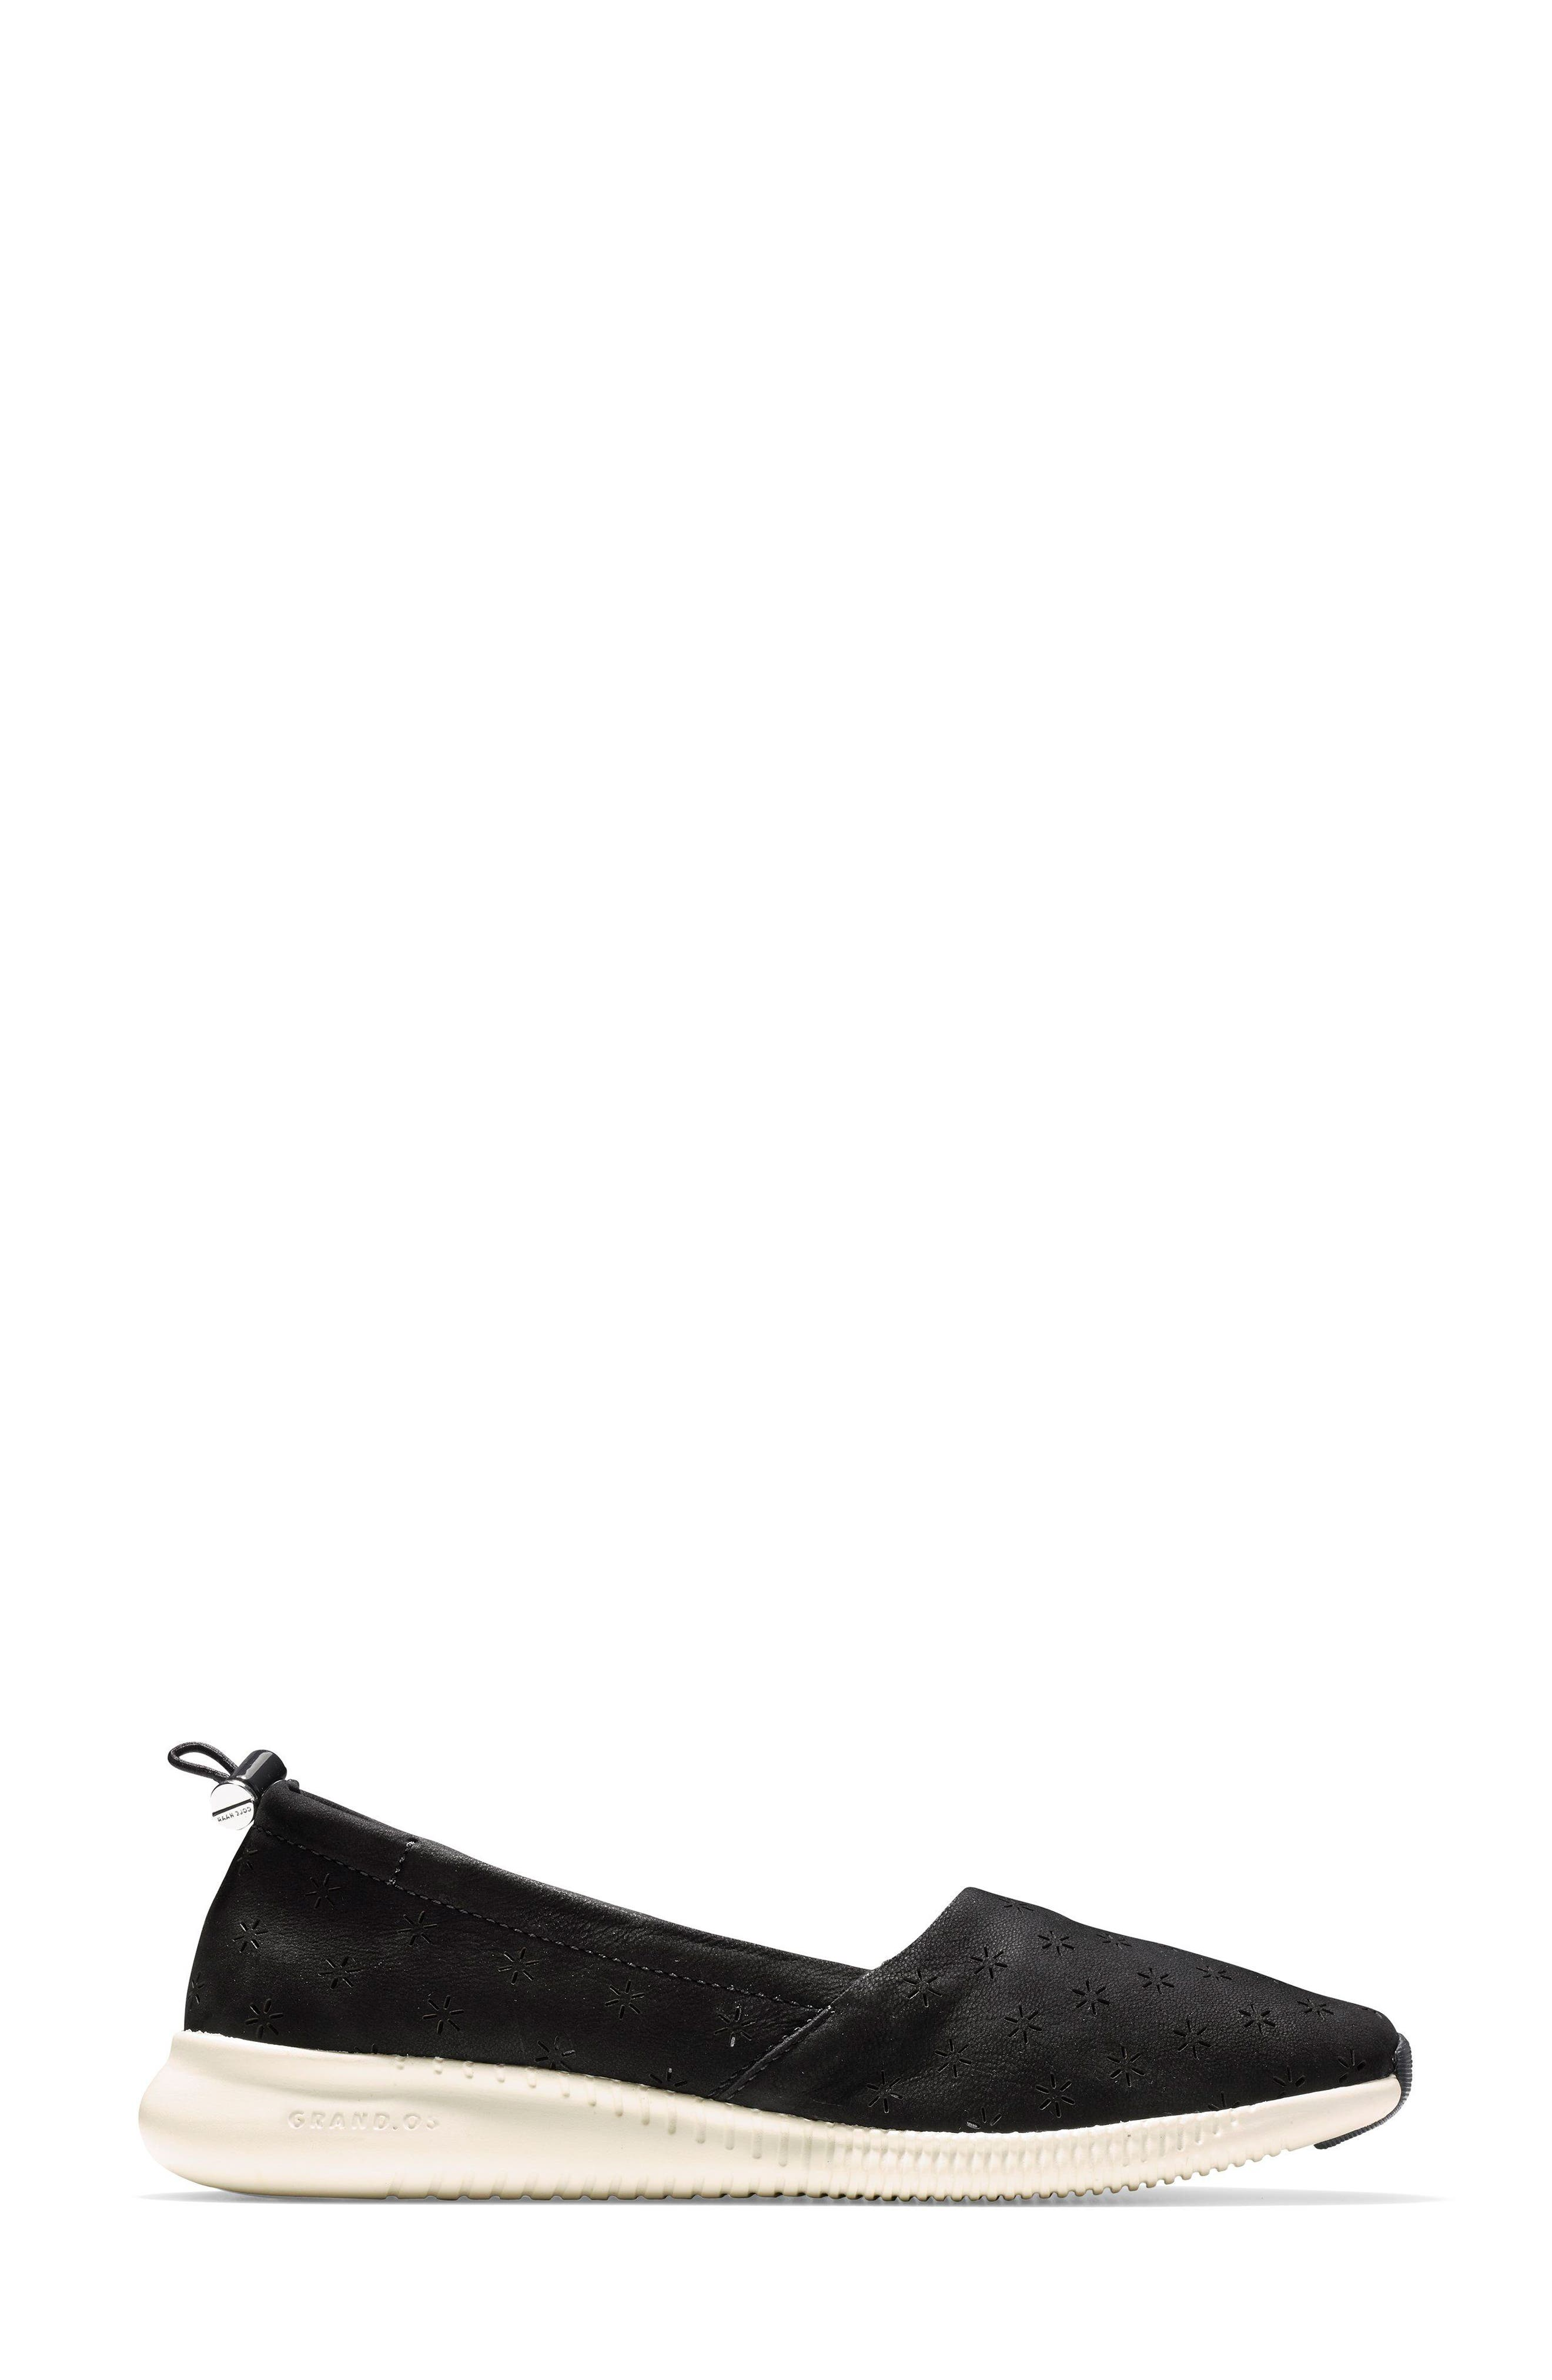 Studiogrand Perforated Slip-on,                             Alternate thumbnail 3, color,                             001